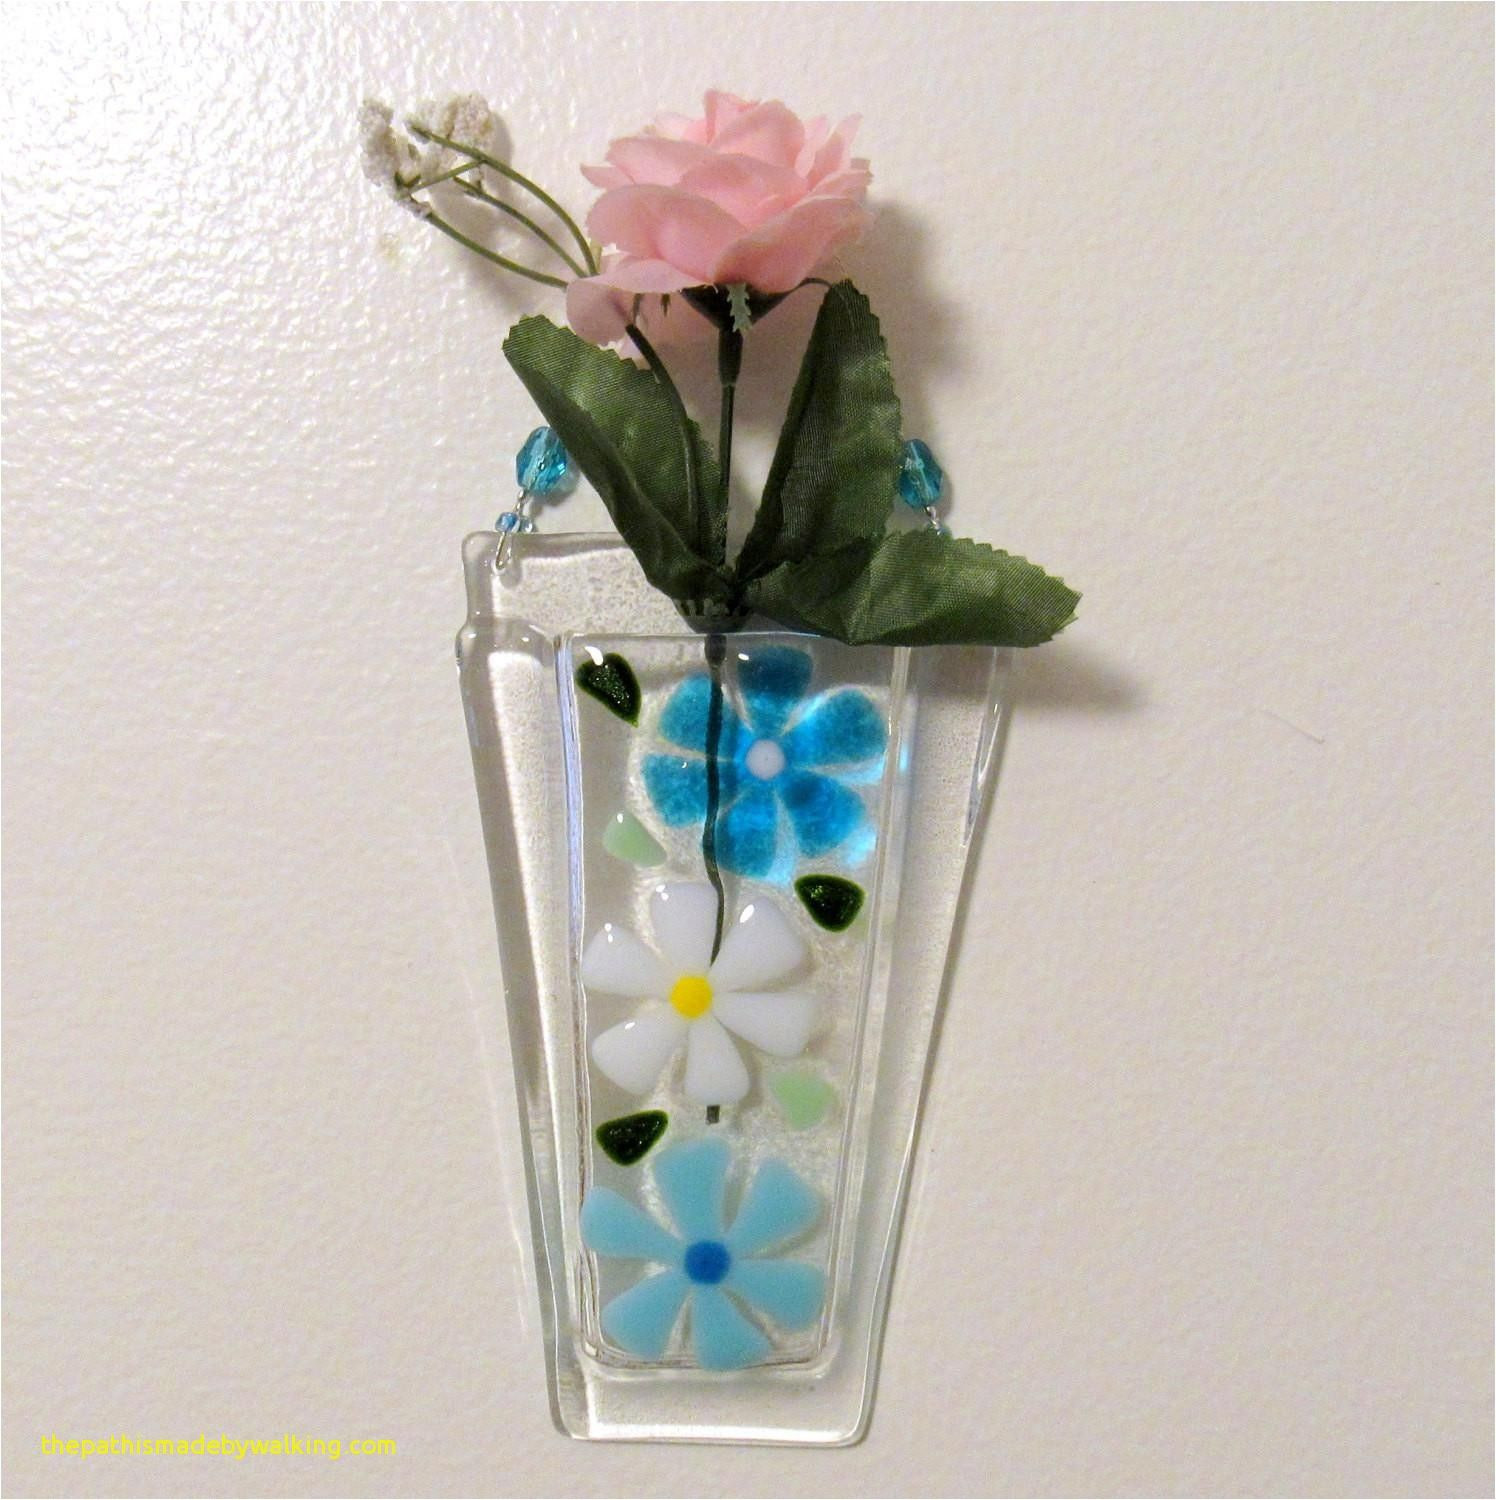 Artificial Flowers In Clear Vases Of Wall Hanging Flower Vase Best Of Easy Newspaper Art Luxury Media within Wall Hanging Flower Vase Best Of Easy Newspaper Art Luxury Media Cache Ak0 Pinimg originals D0